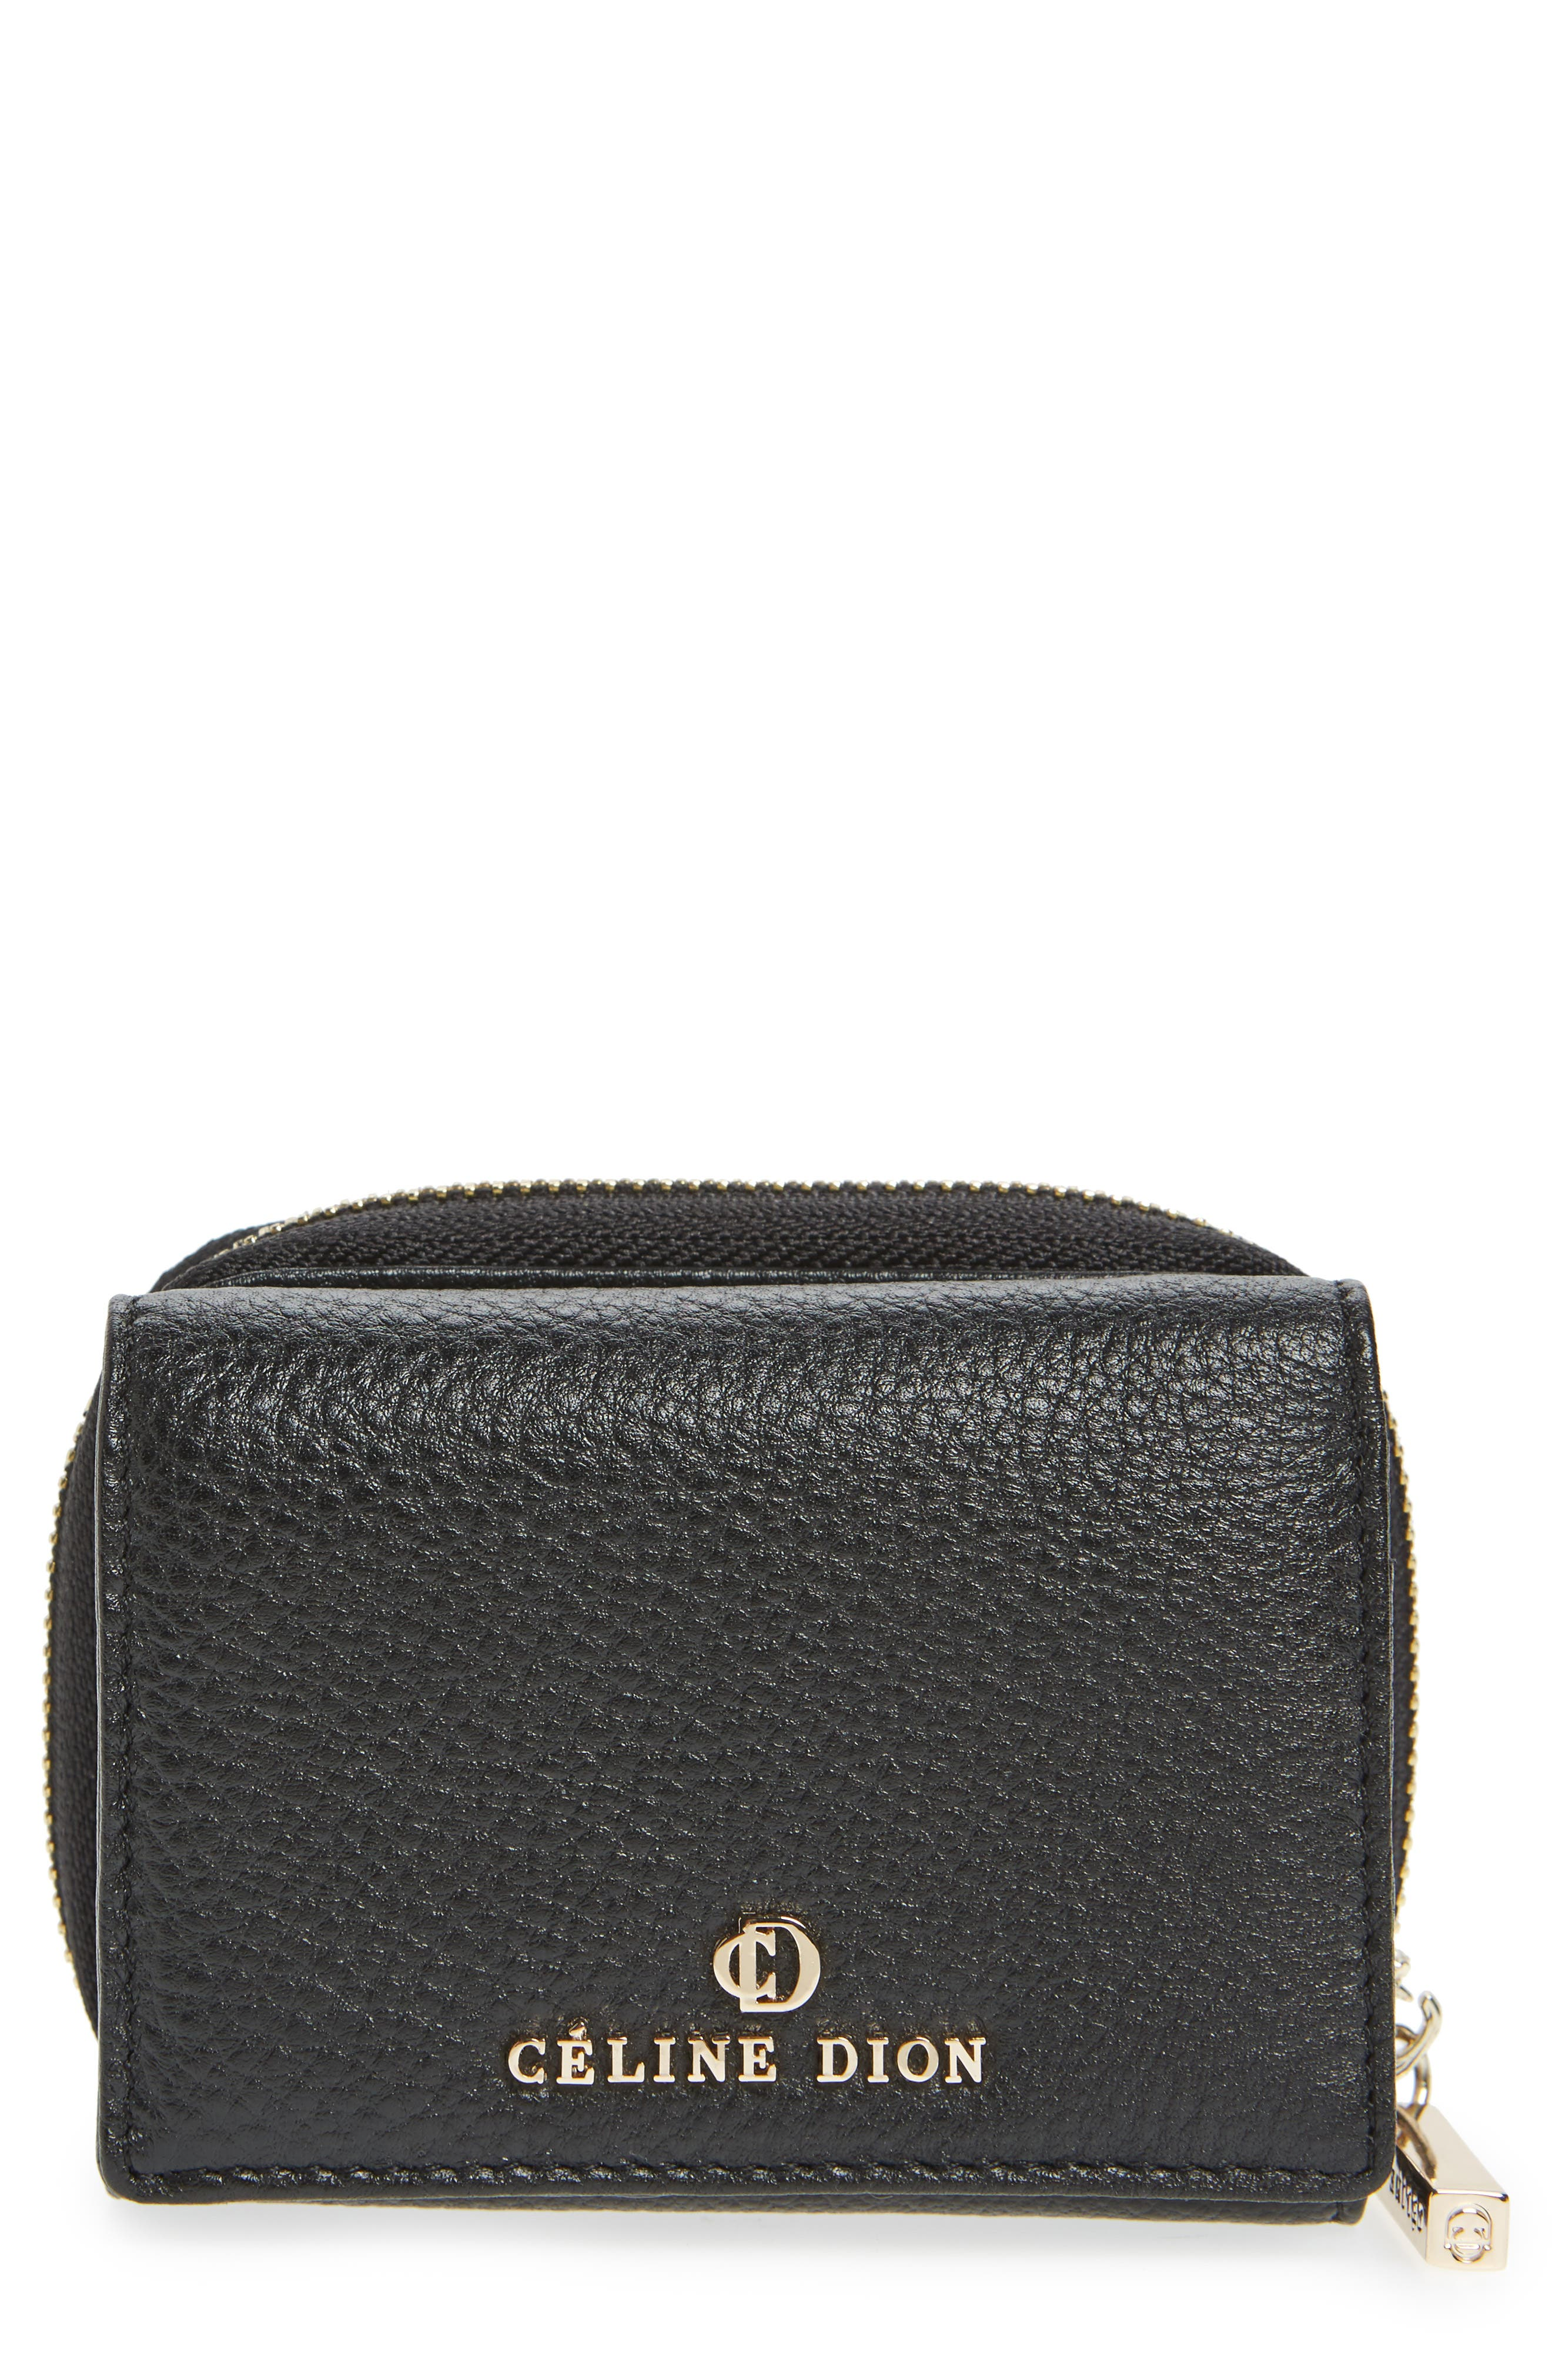 Main Image - Céline Dion Small Adagio Leather Wallet